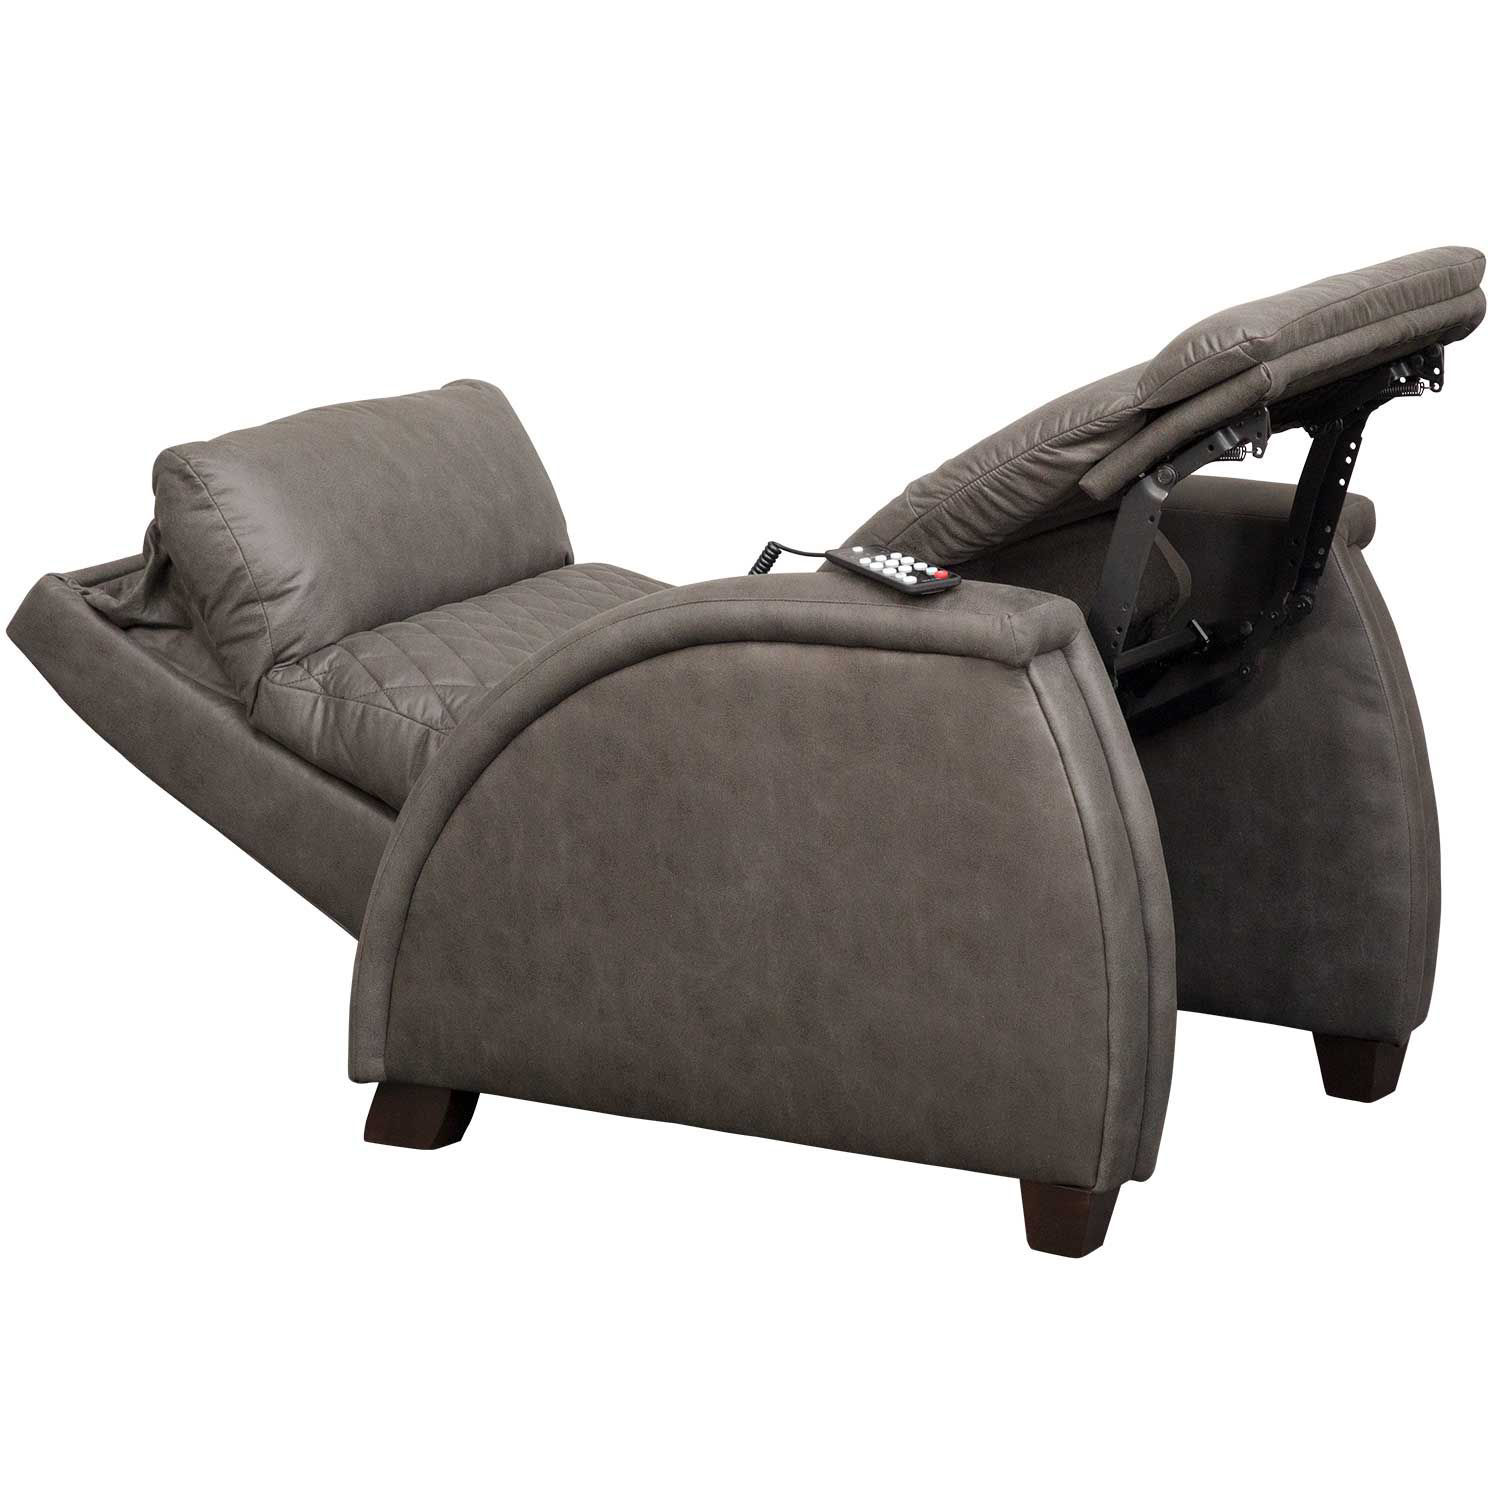 Picture of Jupiter Slate SoCozi Zero Gravity Power Recliner with Adjustable Headrest